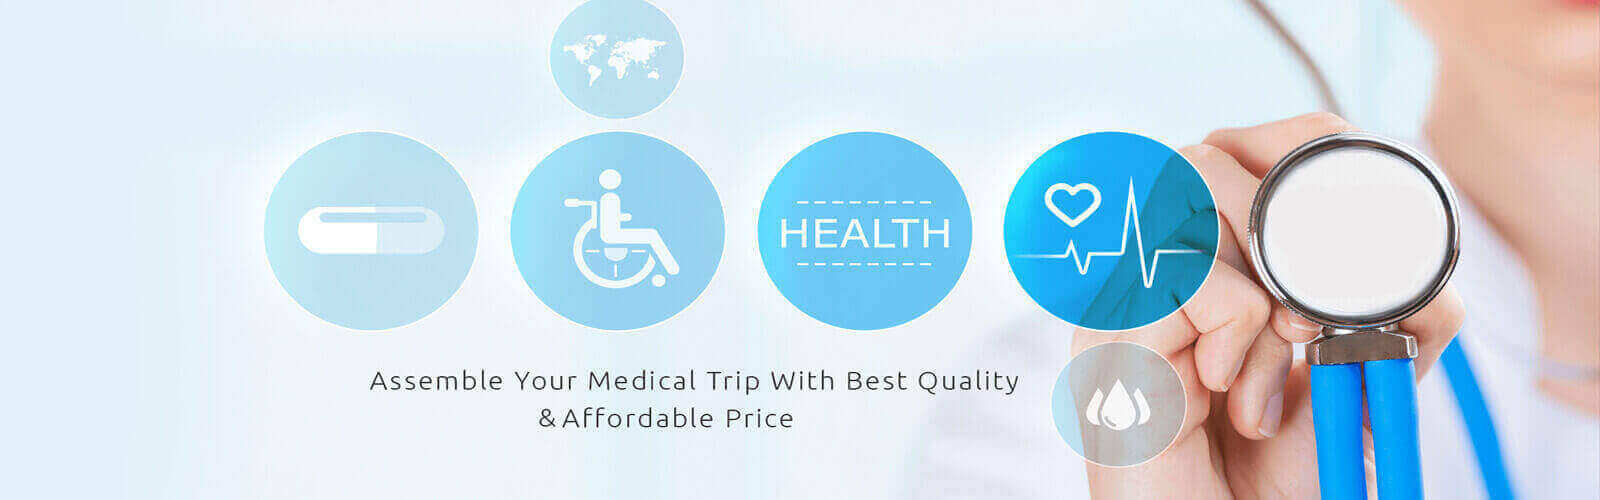 Are You Seeking For Affordable Medical Treatment? We Are Happy To Help You